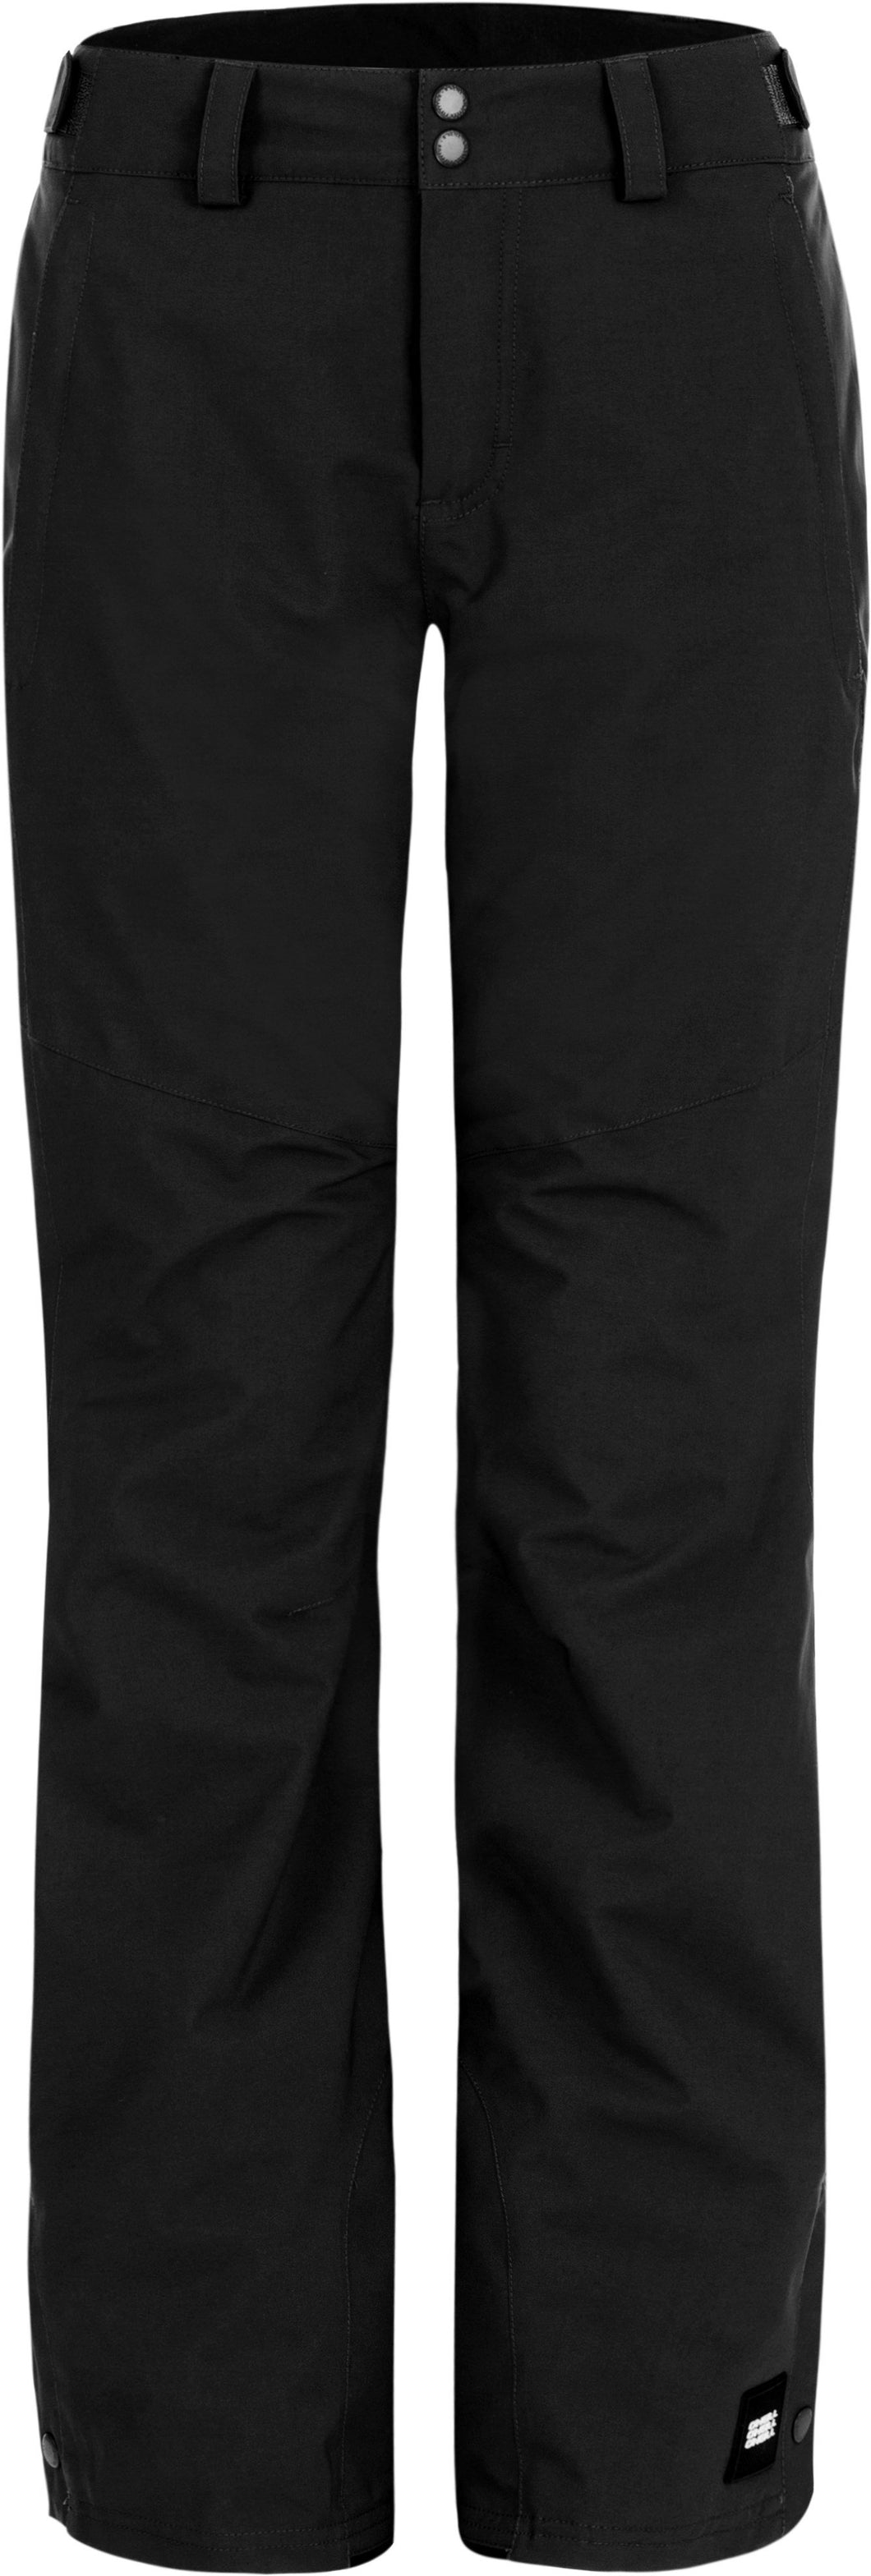 O'Neill Ladies Star Insulated Ski and Snowboard Pant Front